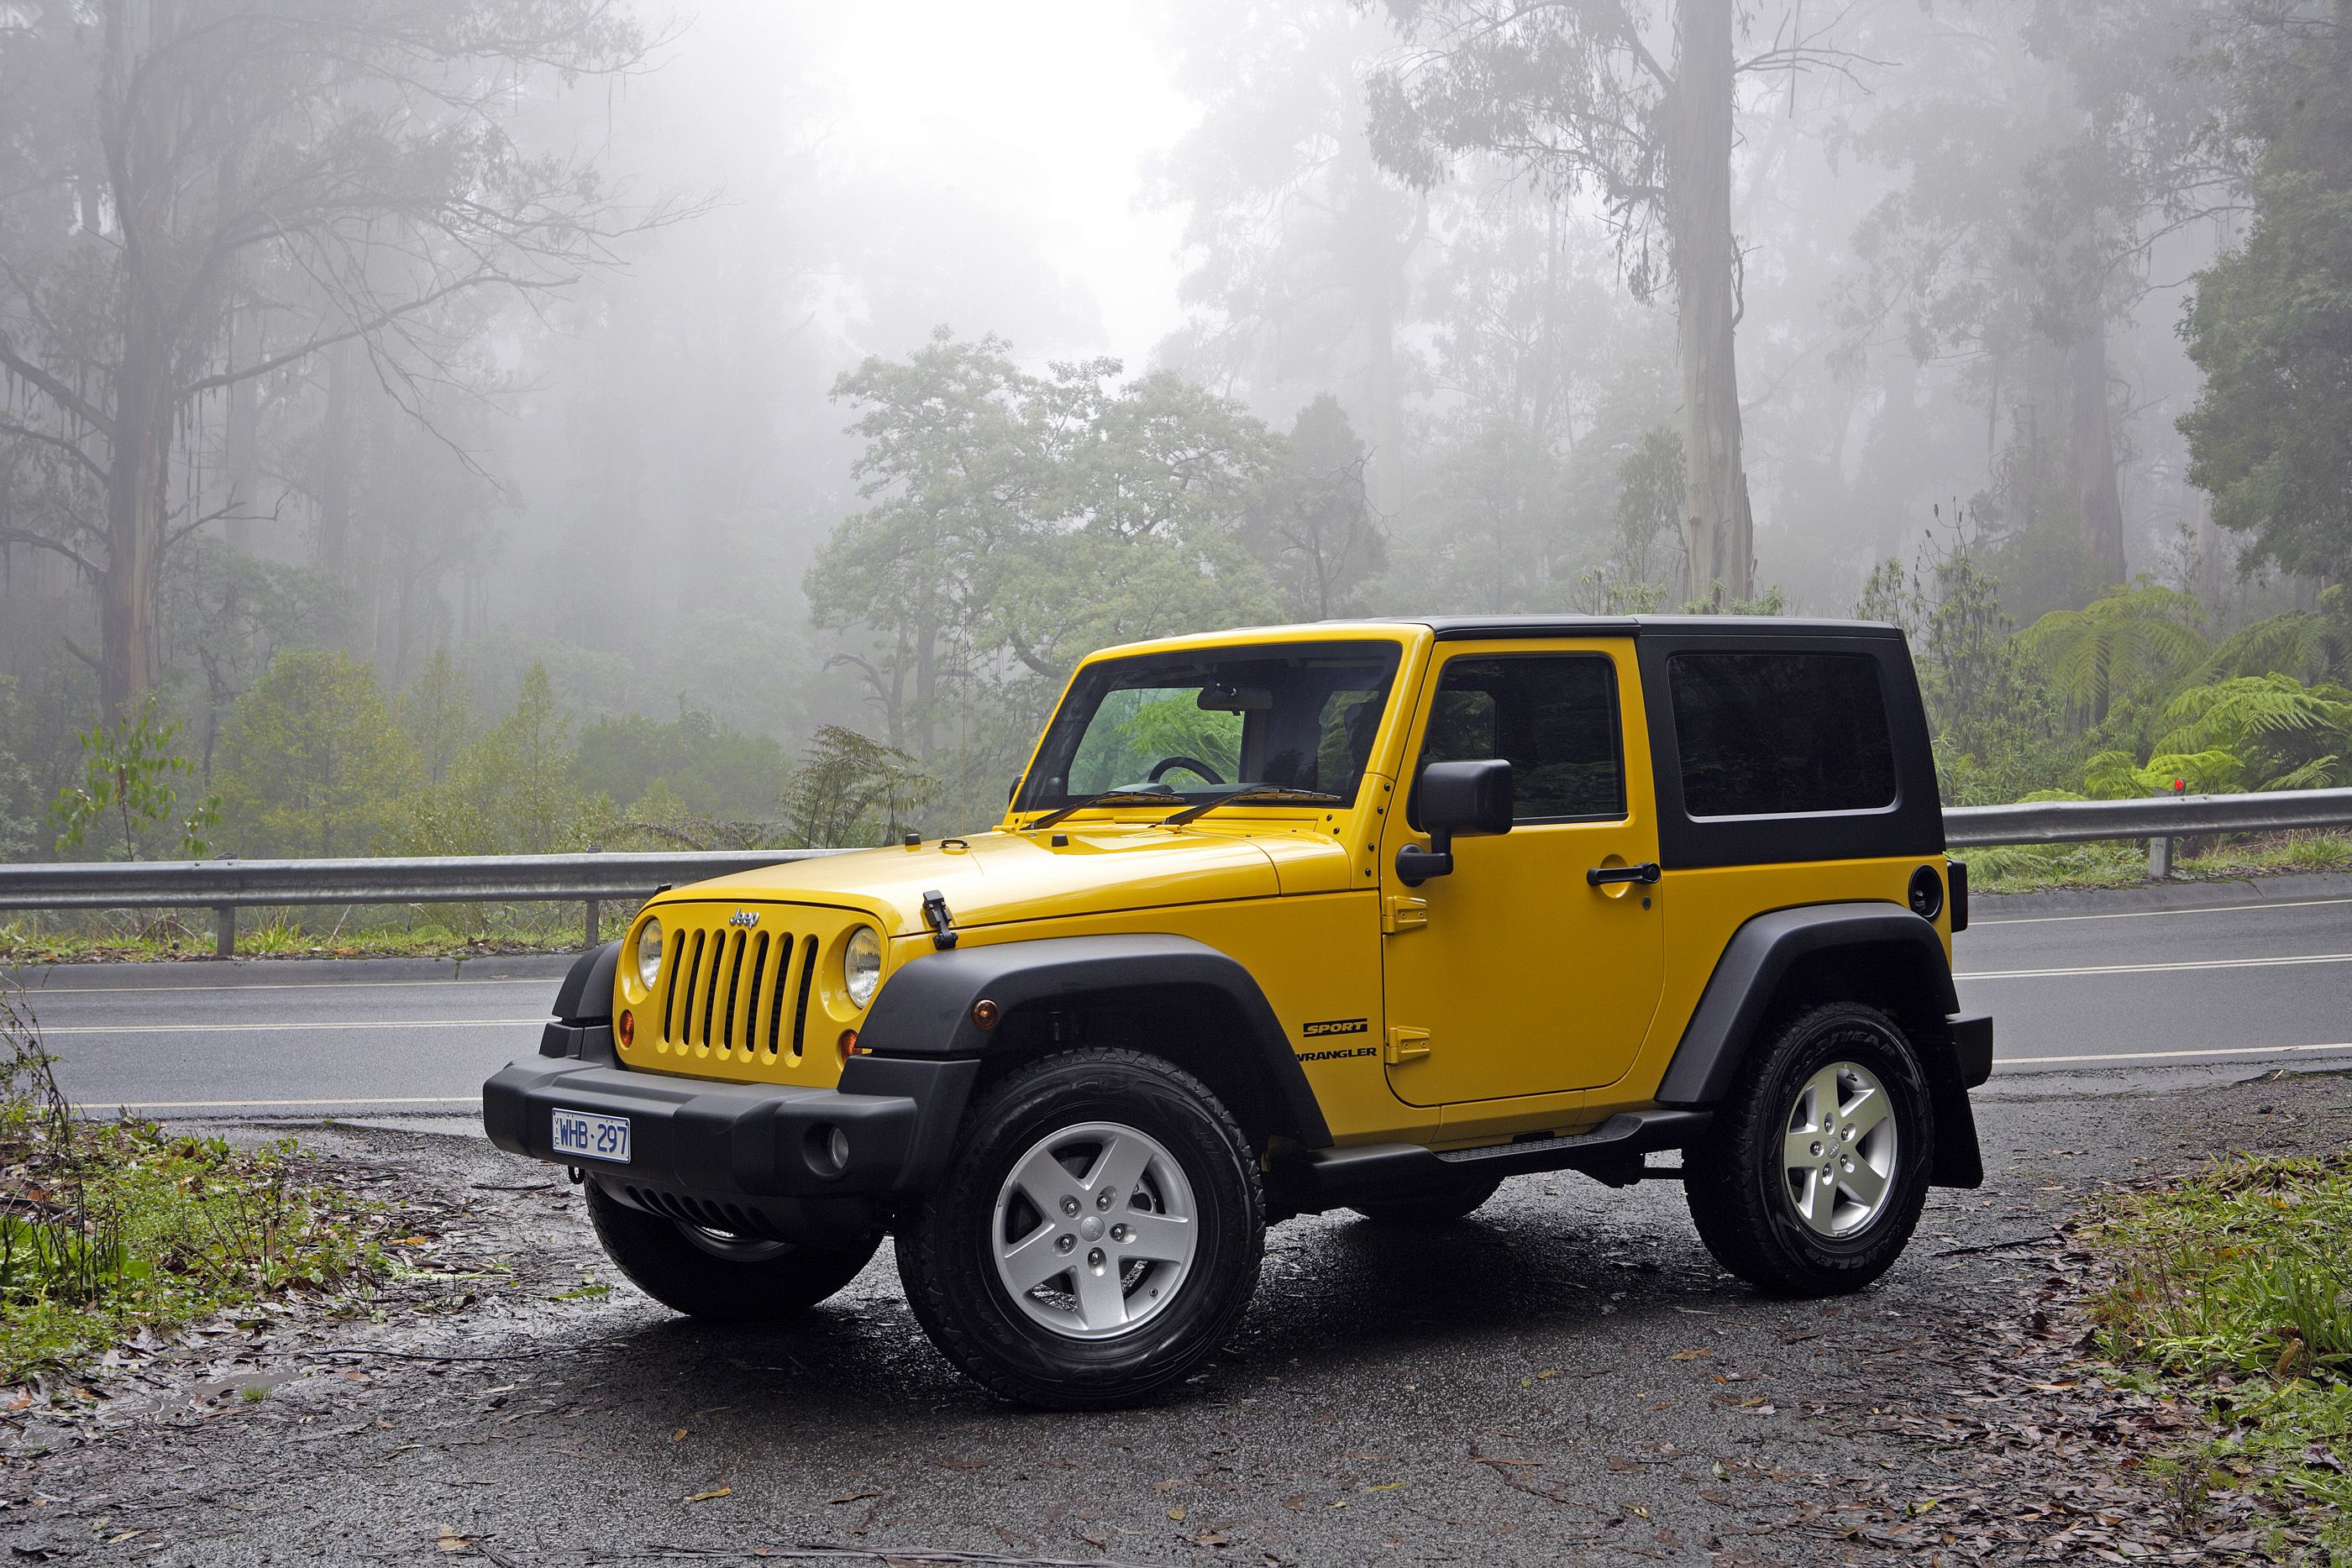 This Is The Jeep I Want Yellow Jeep Wrangler 4wd 4dr Unlimited Rubicon Hard Top Only Other Color I Want I Yellow Jeep Used Jeep Wrangler 4 Door Jeep Wrangler